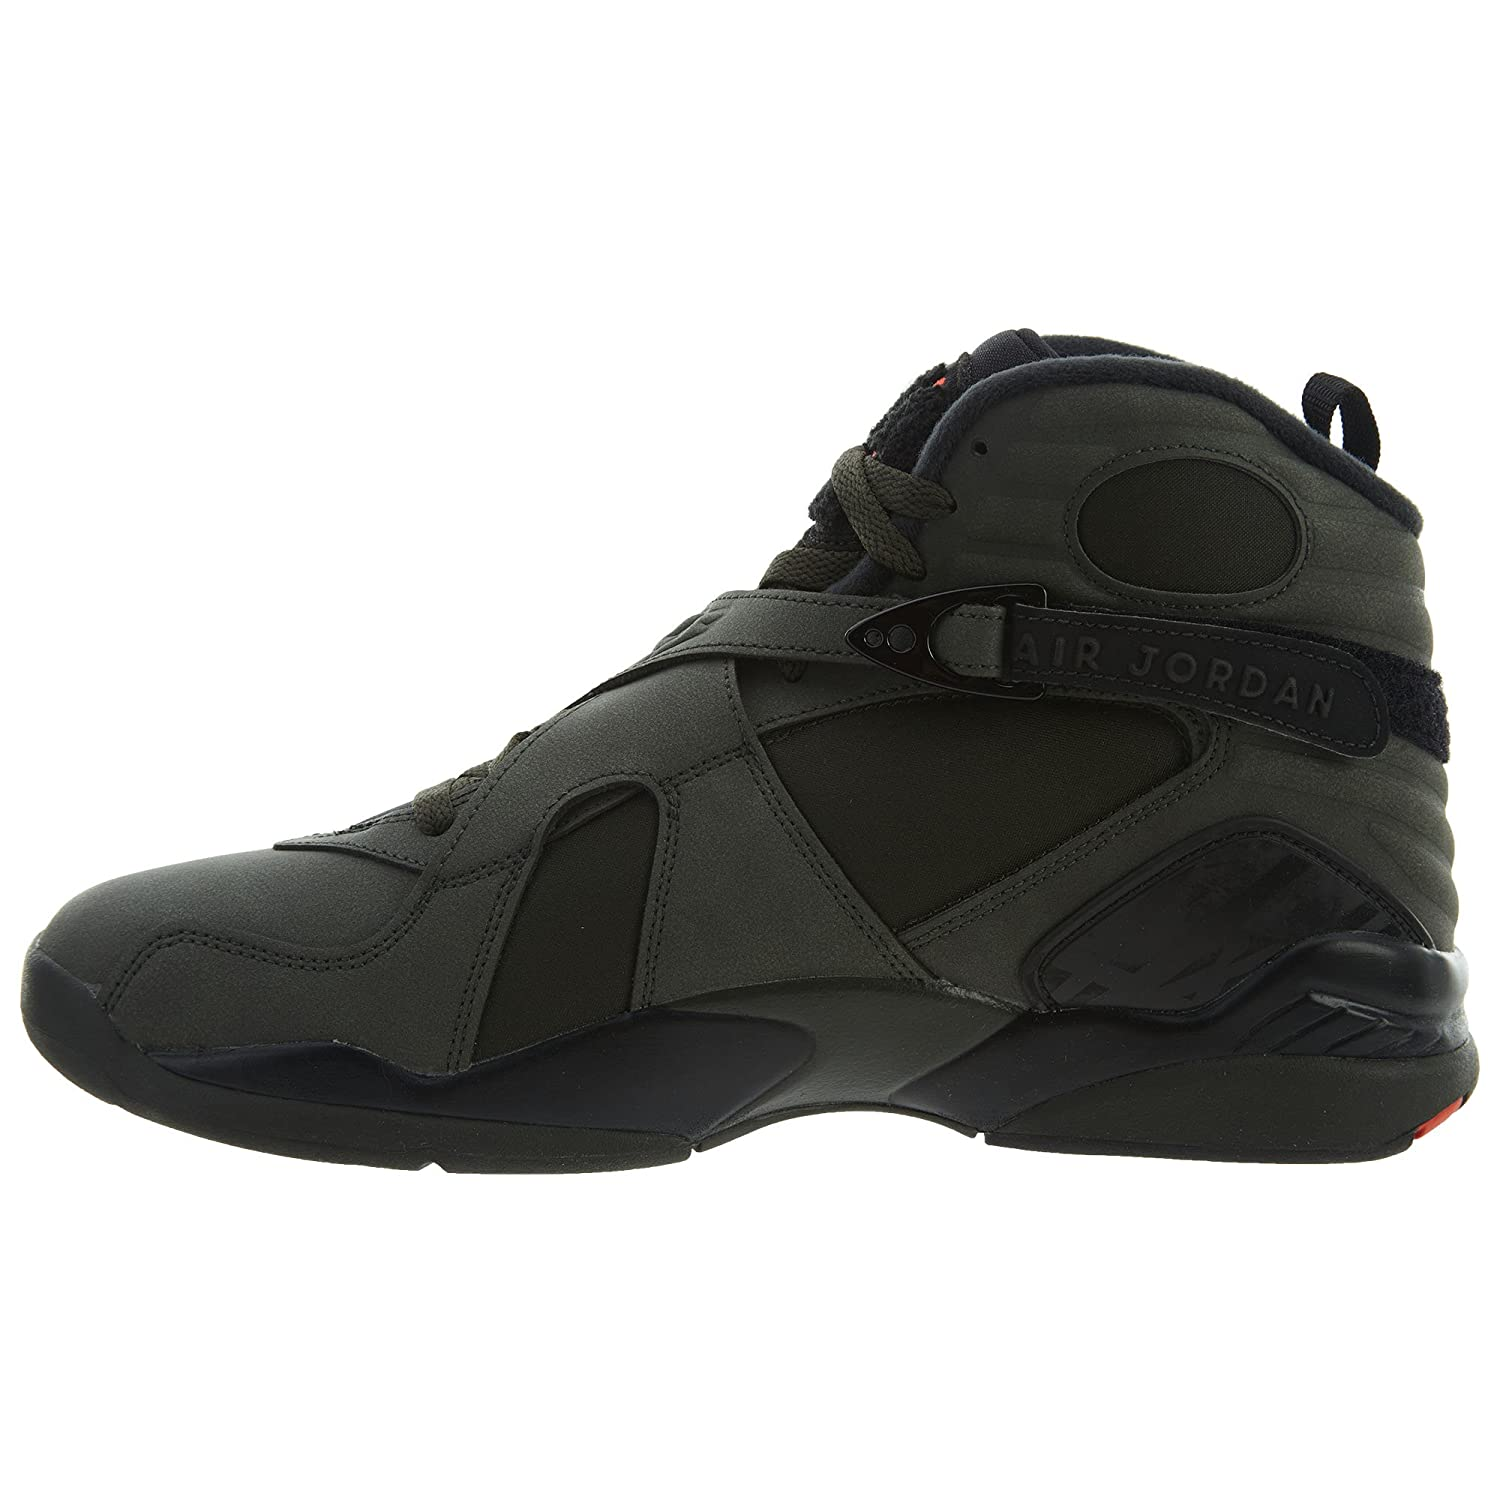 d2768bcc9b3958 Nike Air Jordan 8 Retro Take Flight Olive Green - Sequoia Max Orange-Black  Trainer  Amazon.co.uk  Shoes   Bags